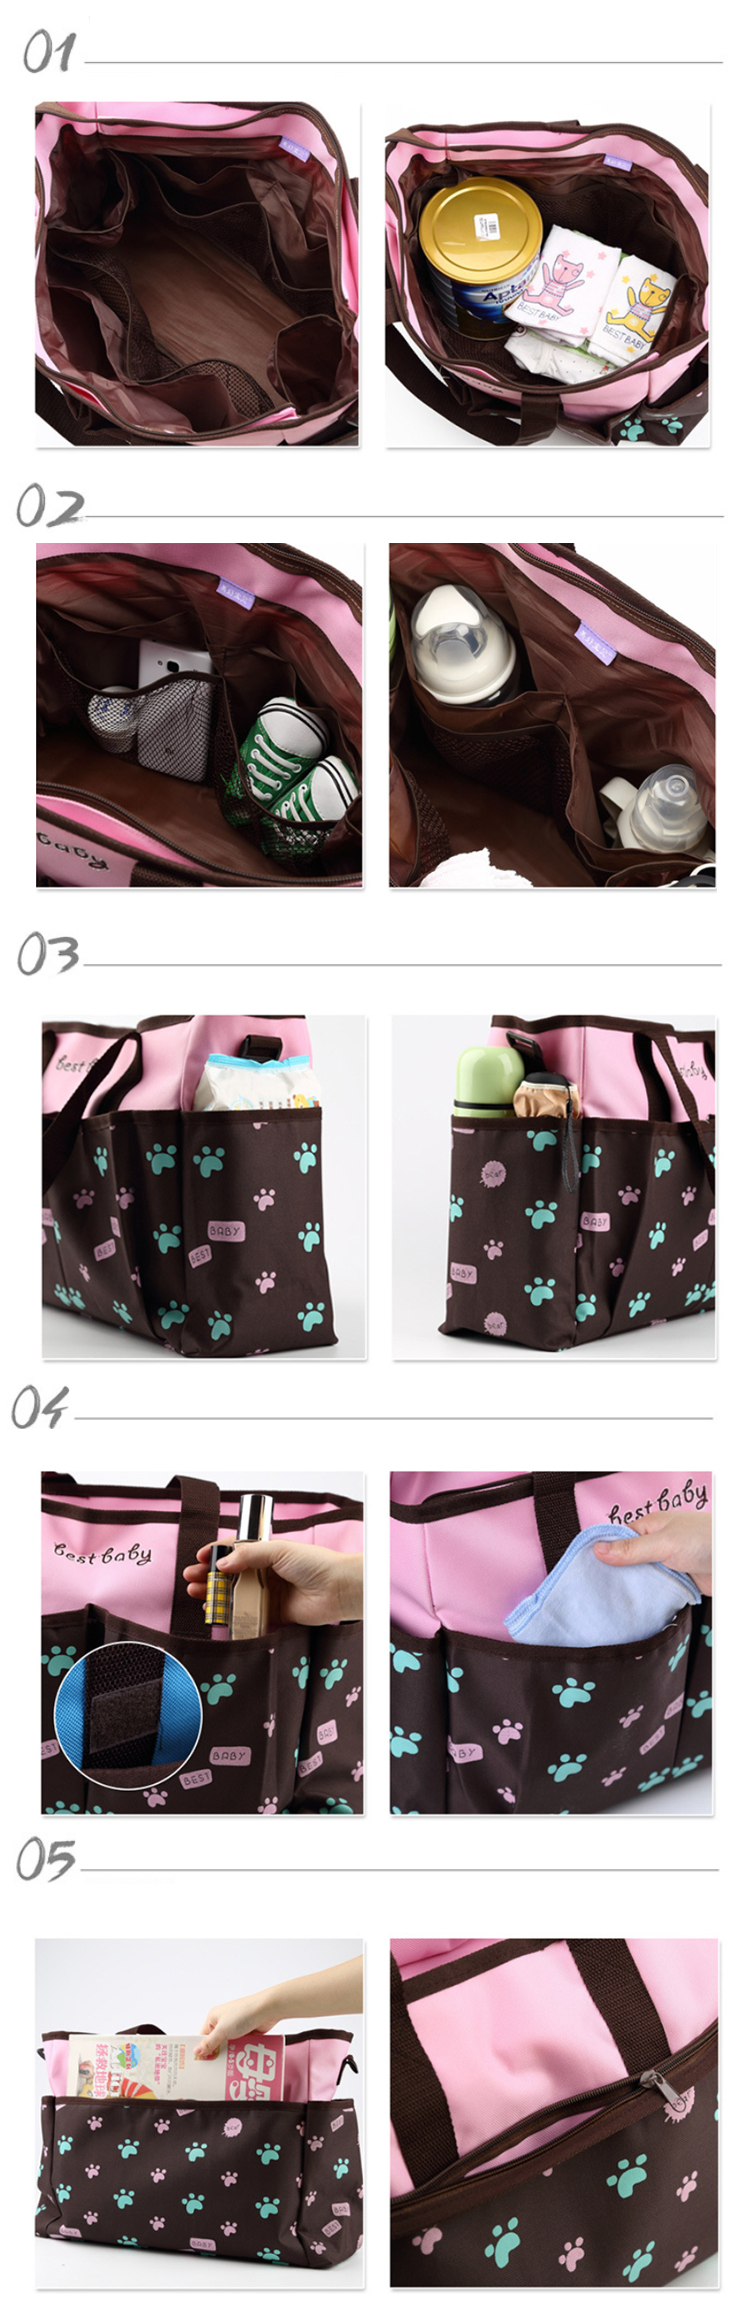 Osgoodway Mother Care Baby Diaper Bag Waterproof Nappy Mummy Shoulder Diaper Tote Bag